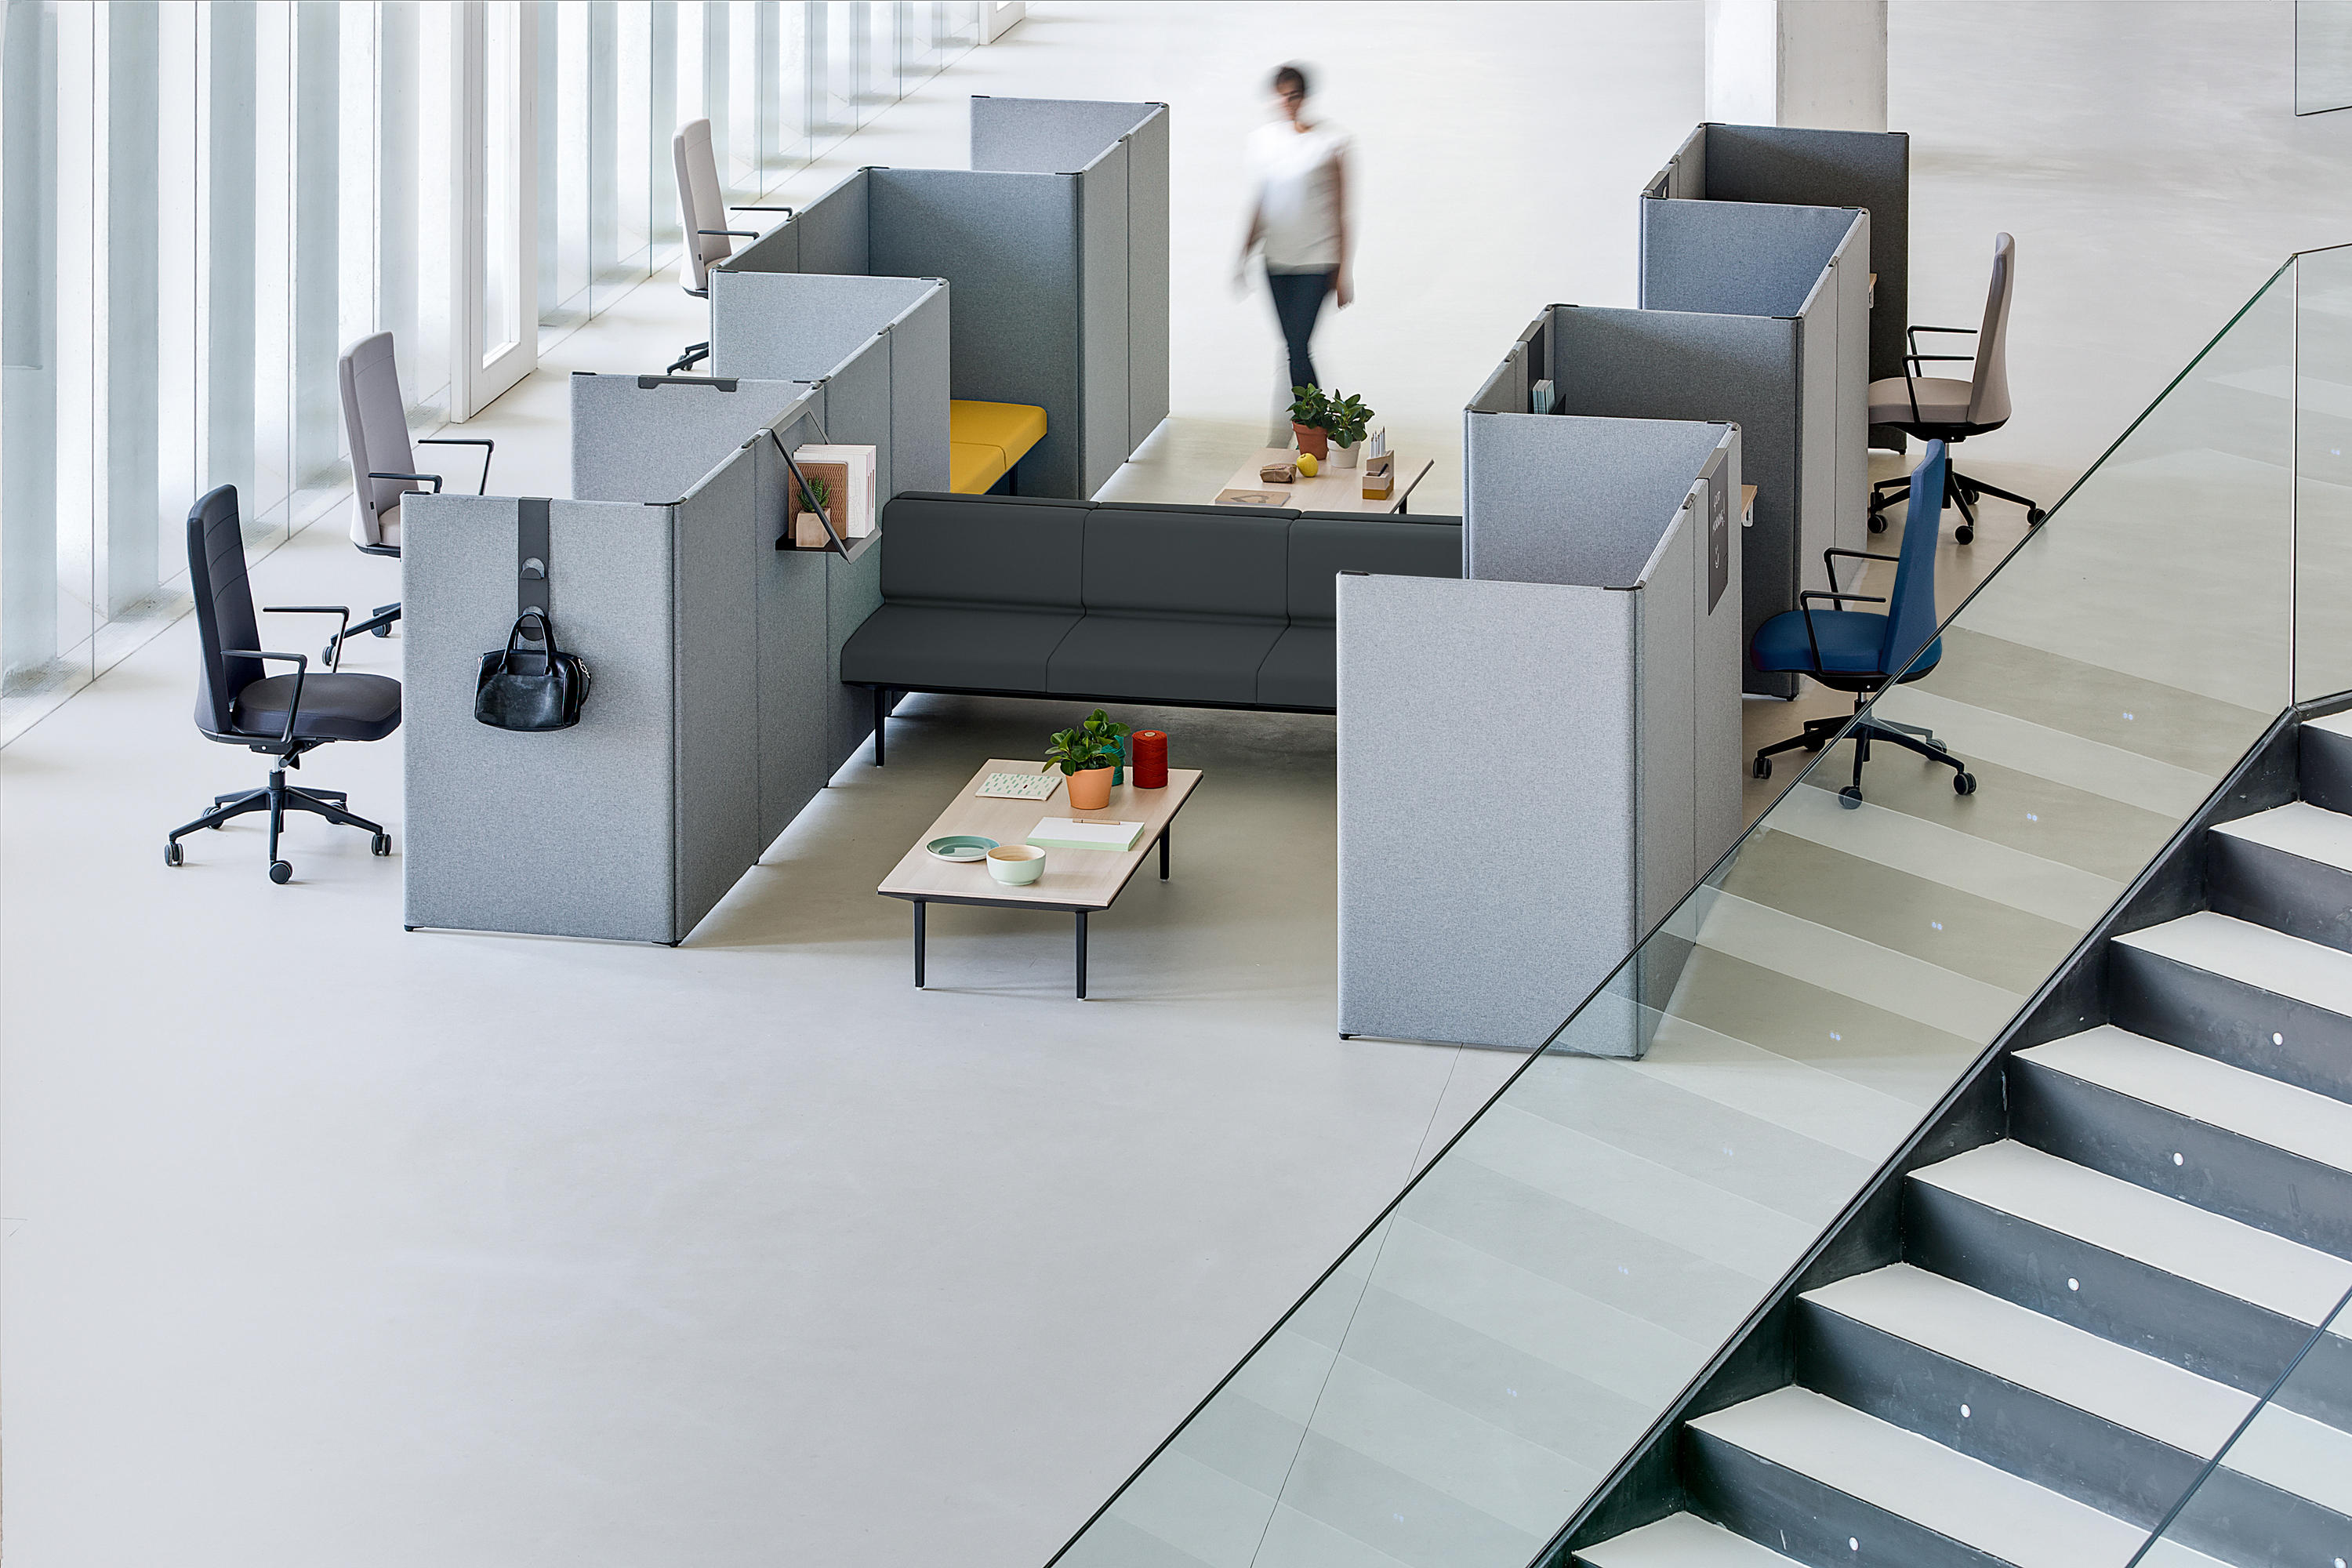 Muebles Oficina Modernos Link - Desks From Actiu | Architonic